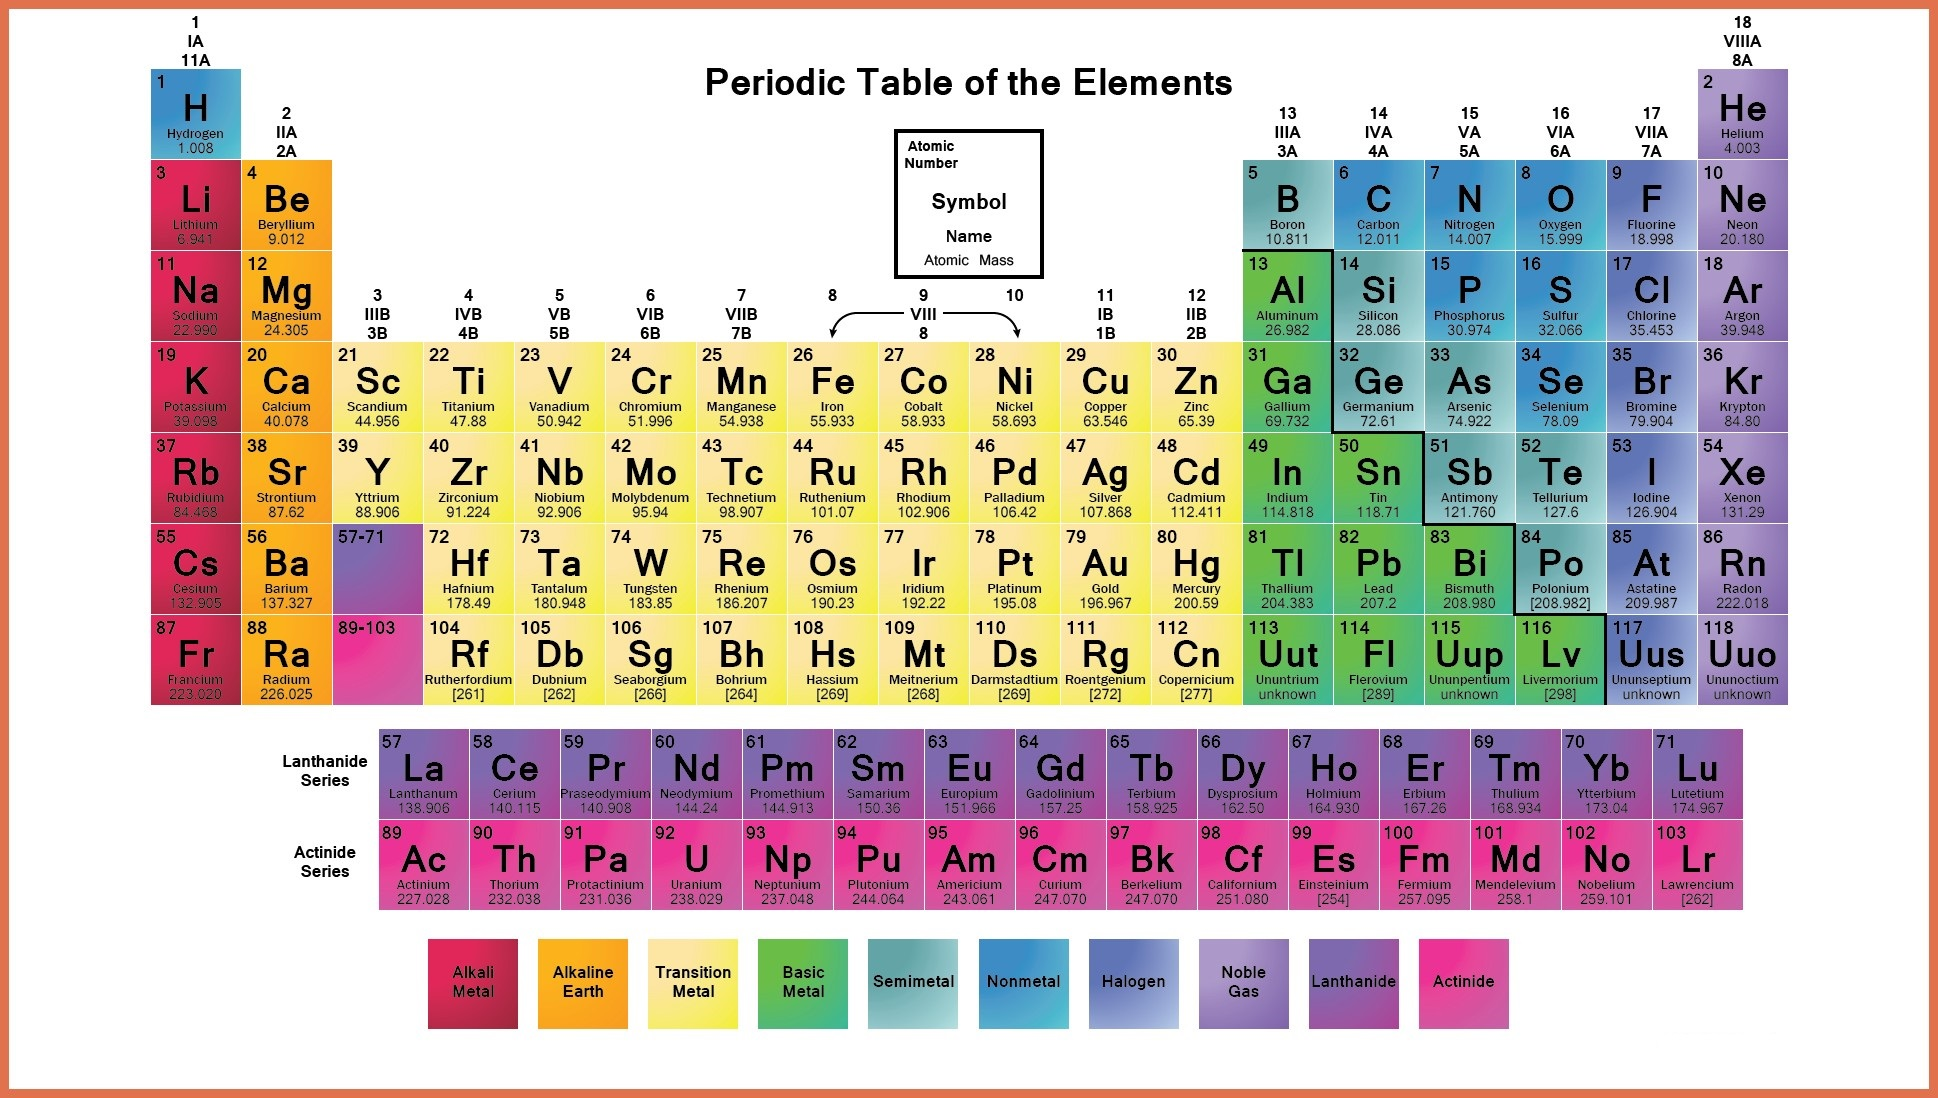 Labelled Periodic Table of Elements